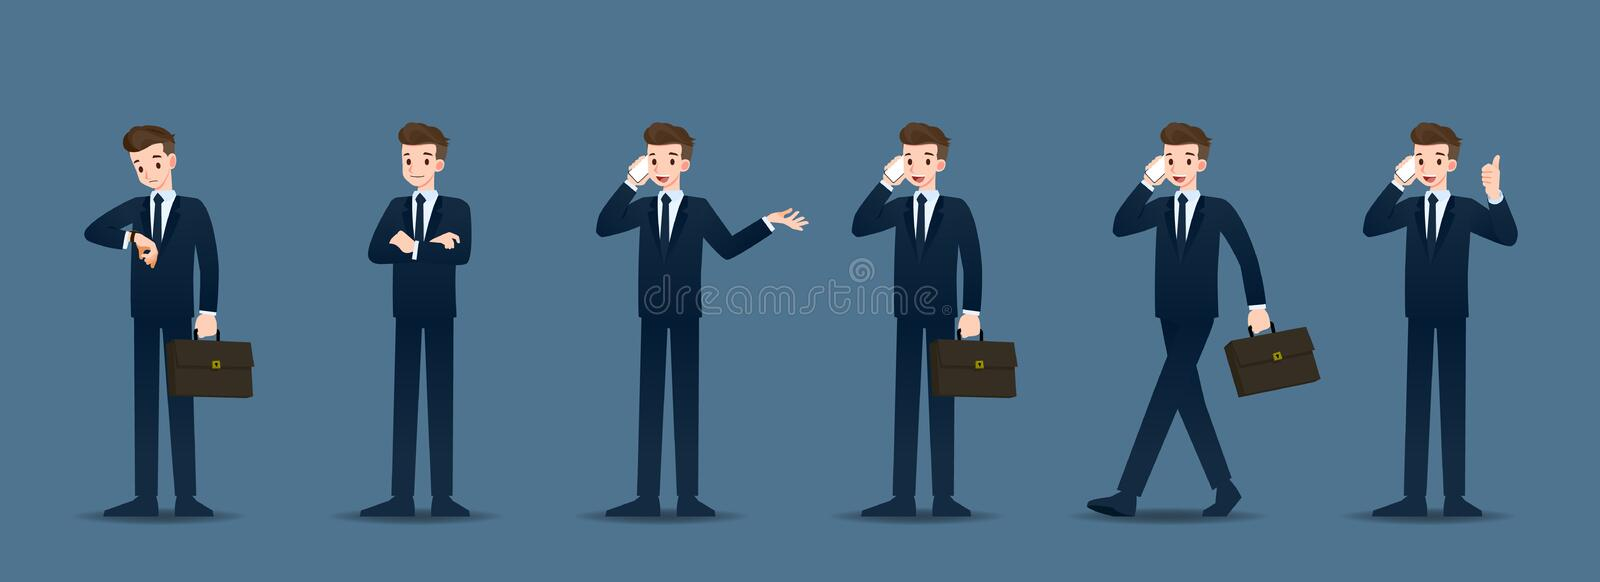 Set of businessman in 6 different gestures. People in business character poses like waiting, communicate and successful. vector illustration